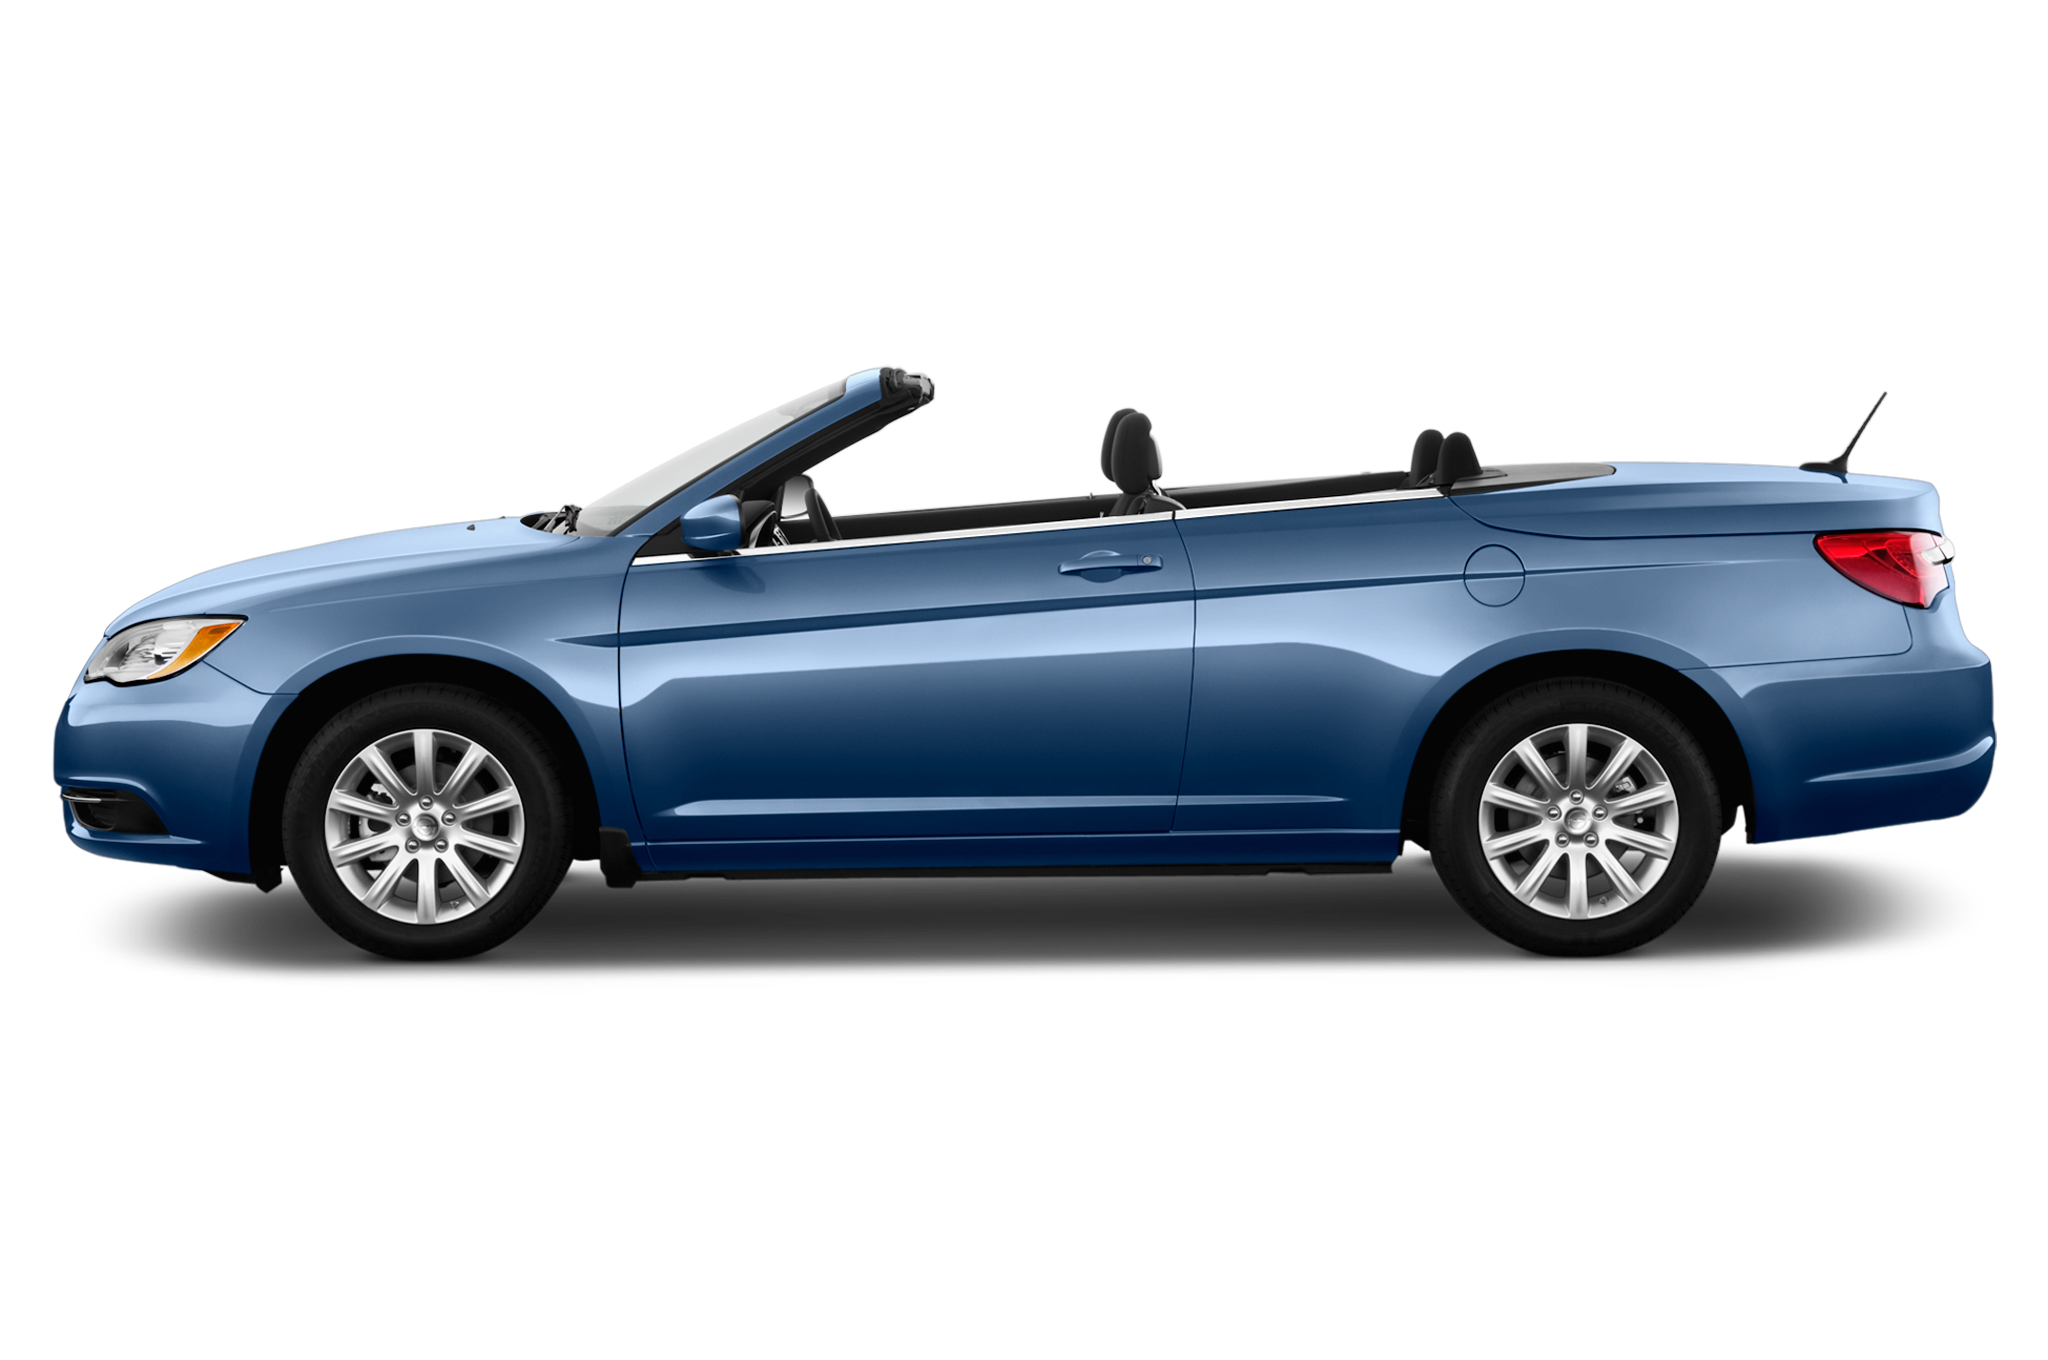 leblanc chrysler six s hardtop straight first convertible john drive